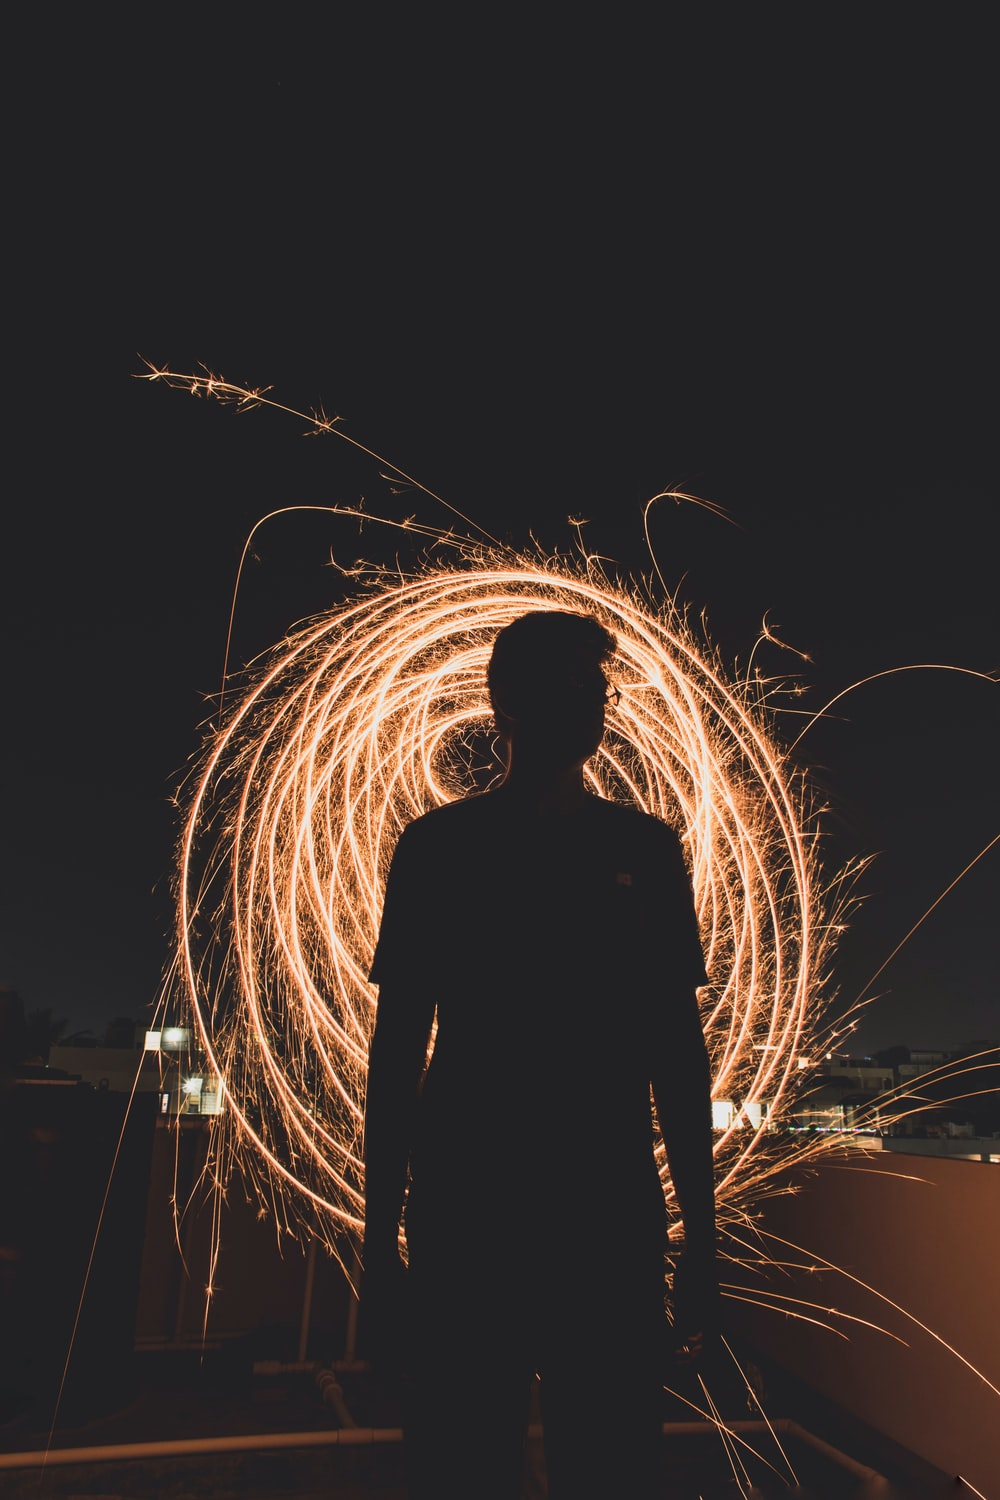 silhouette of man in front of steel wool photography